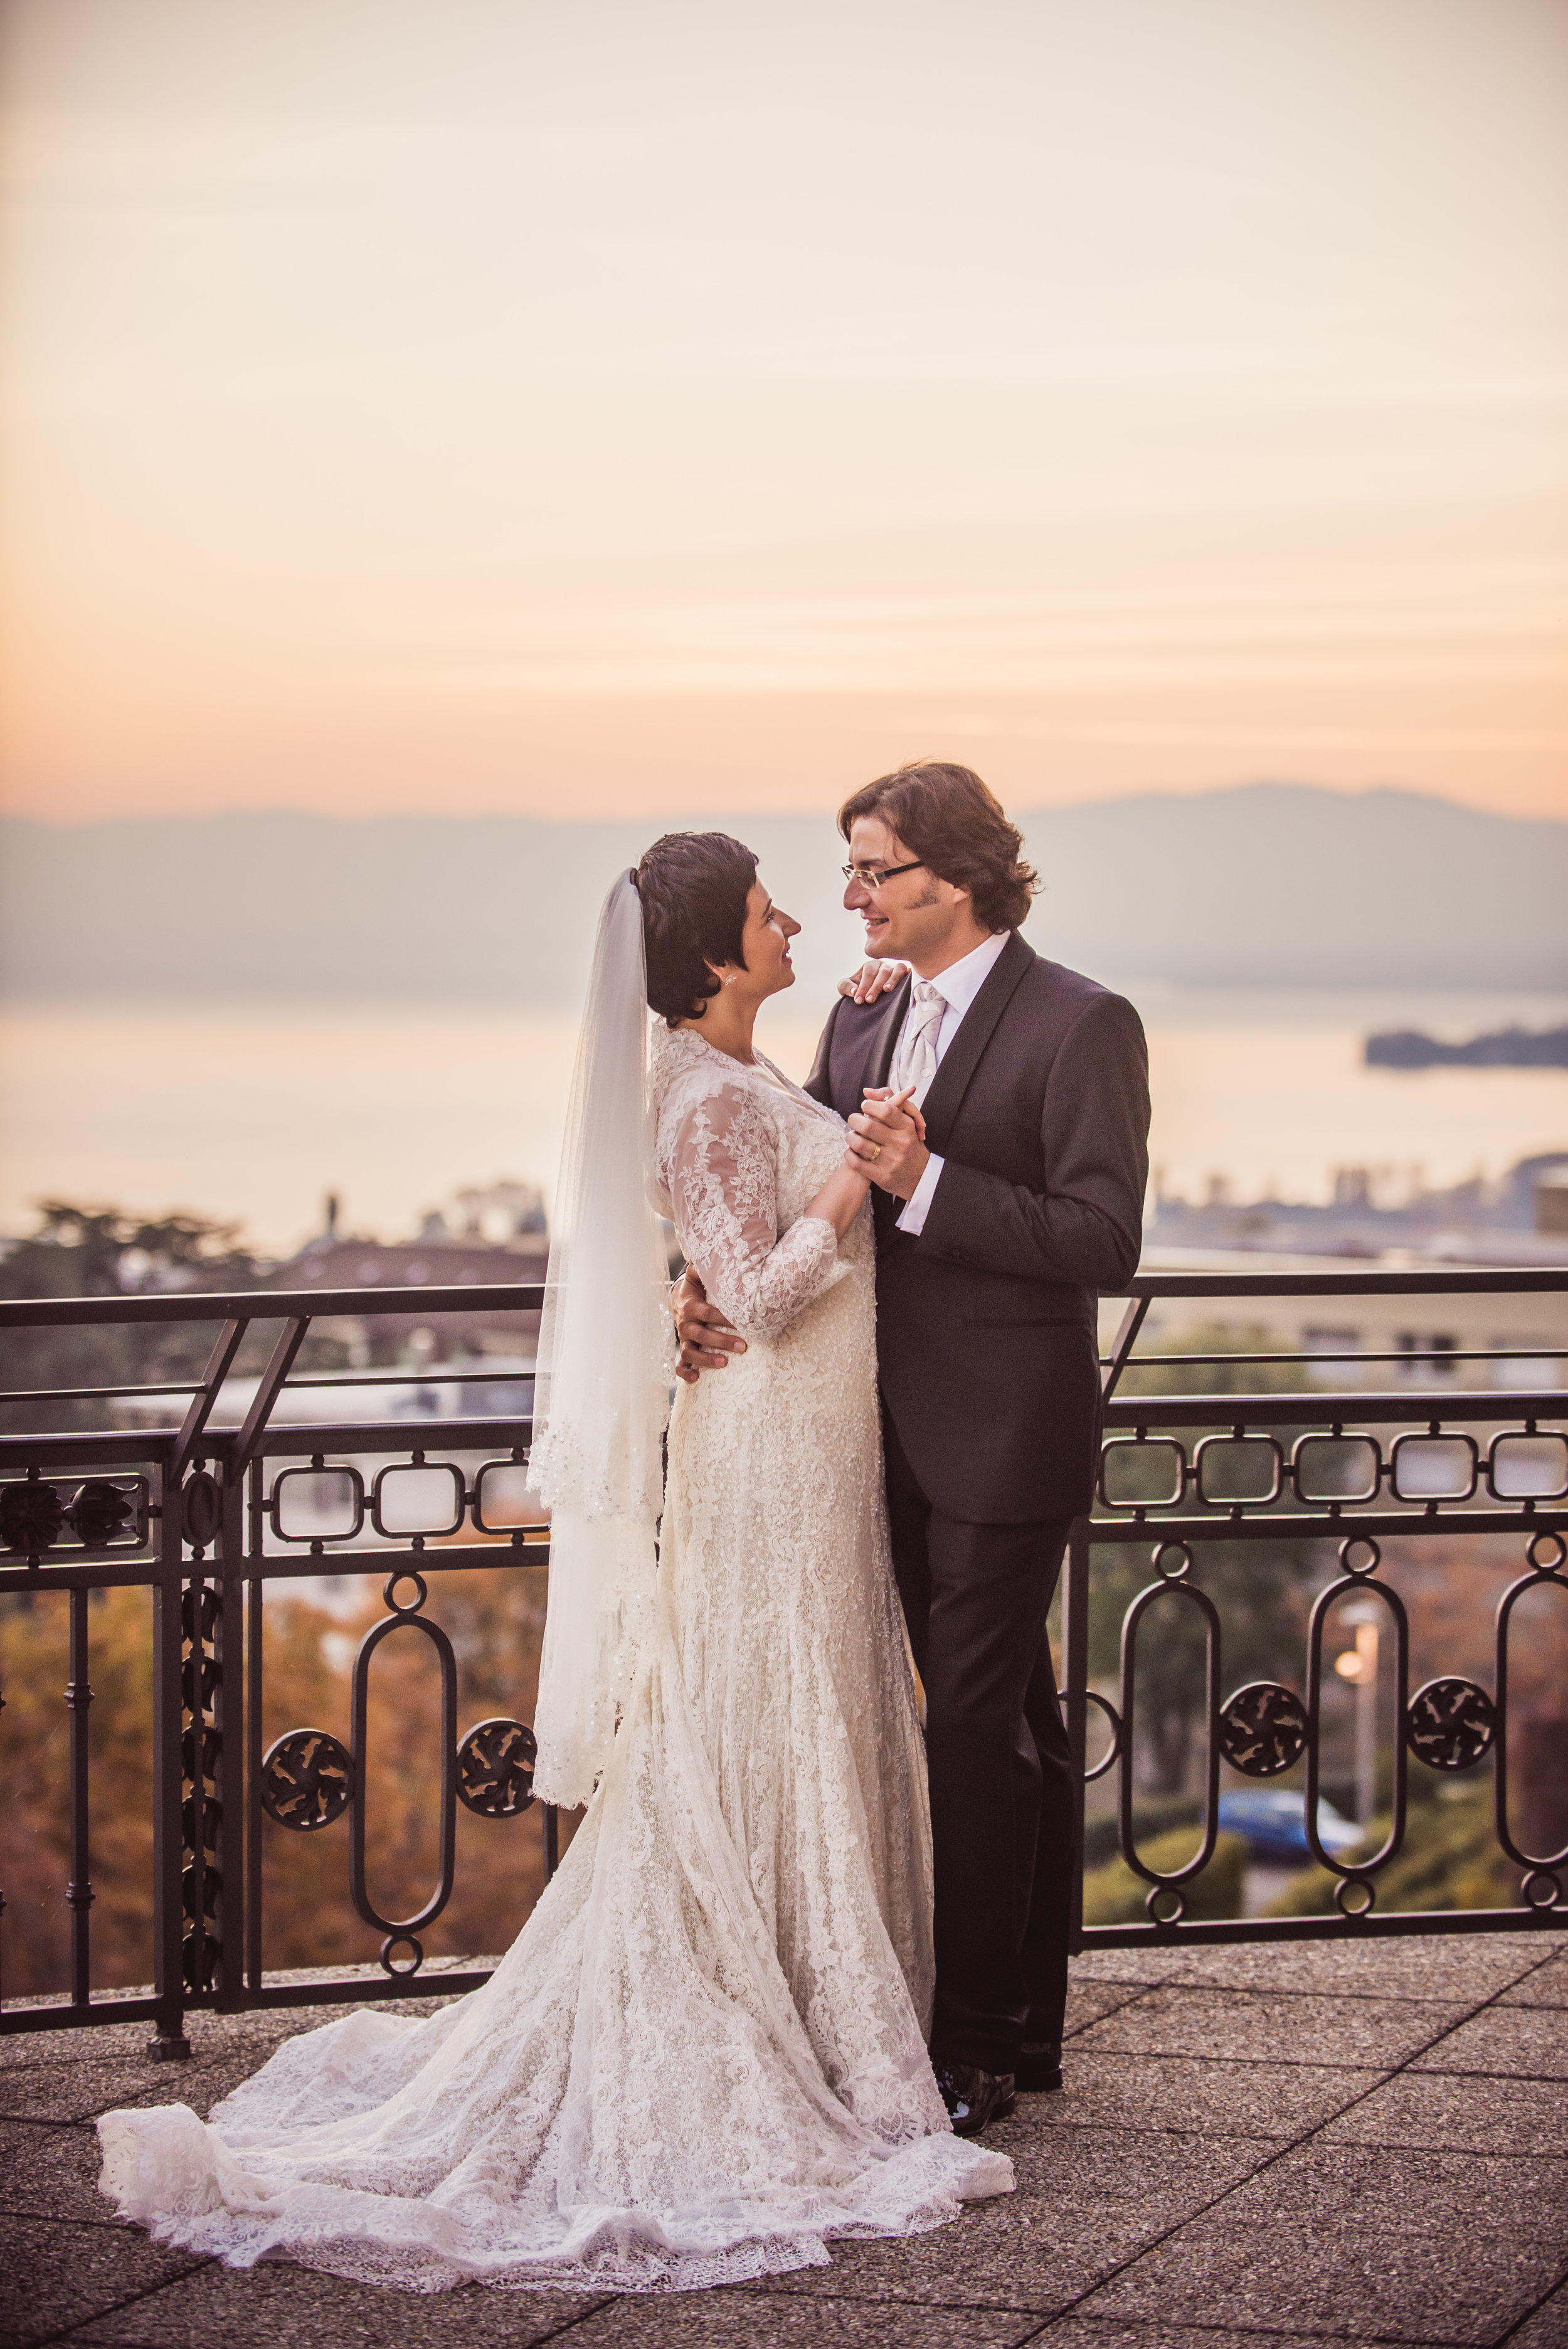 Mr. & Mrs. Fotinos on the balcony of Lausanne Palace at dusk, 29th October, 2016